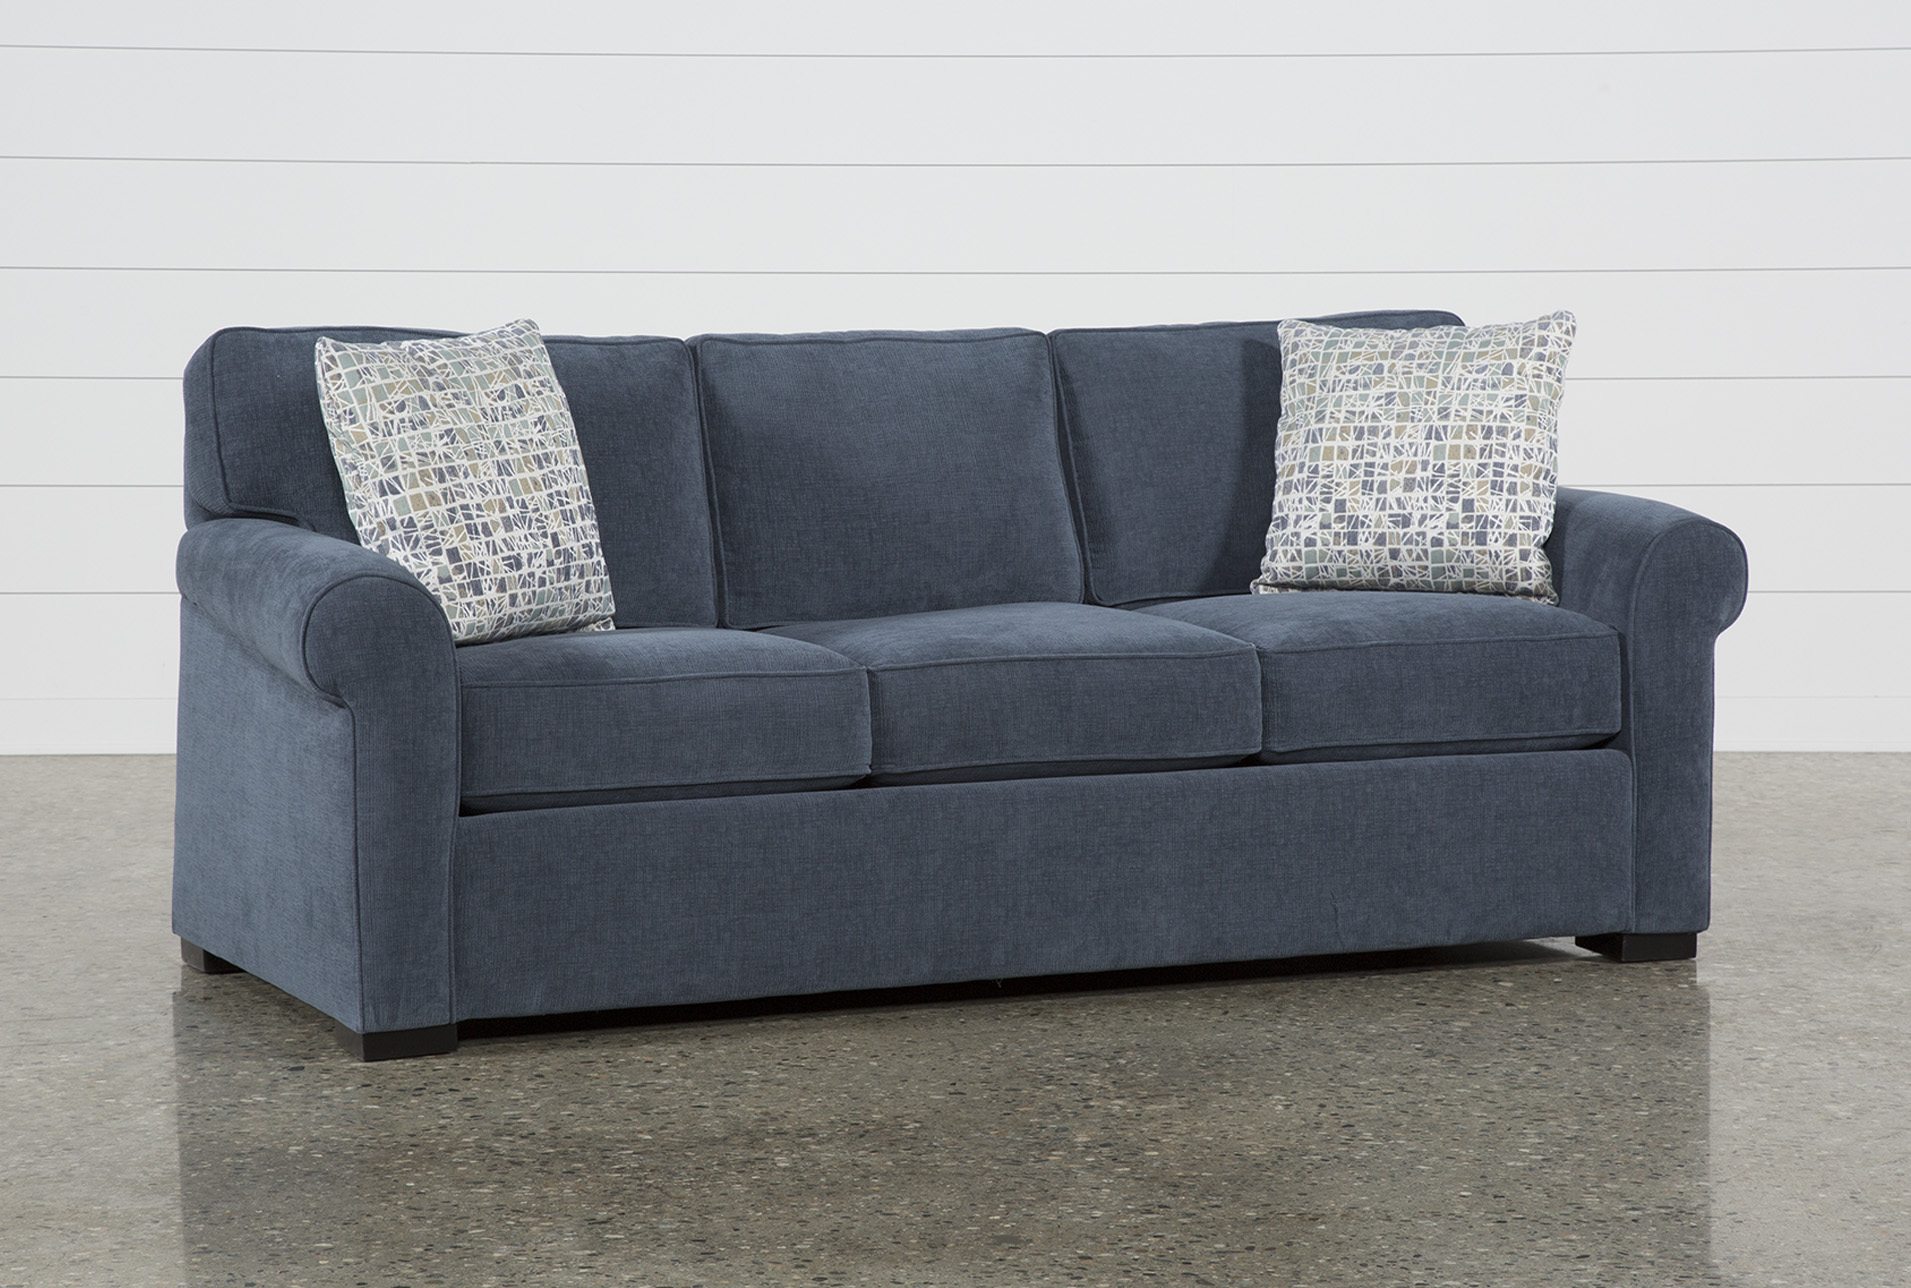 Elm Sofa (Qty: 1) Has Been Successfully Added To Your Cart. Continue  Shopping